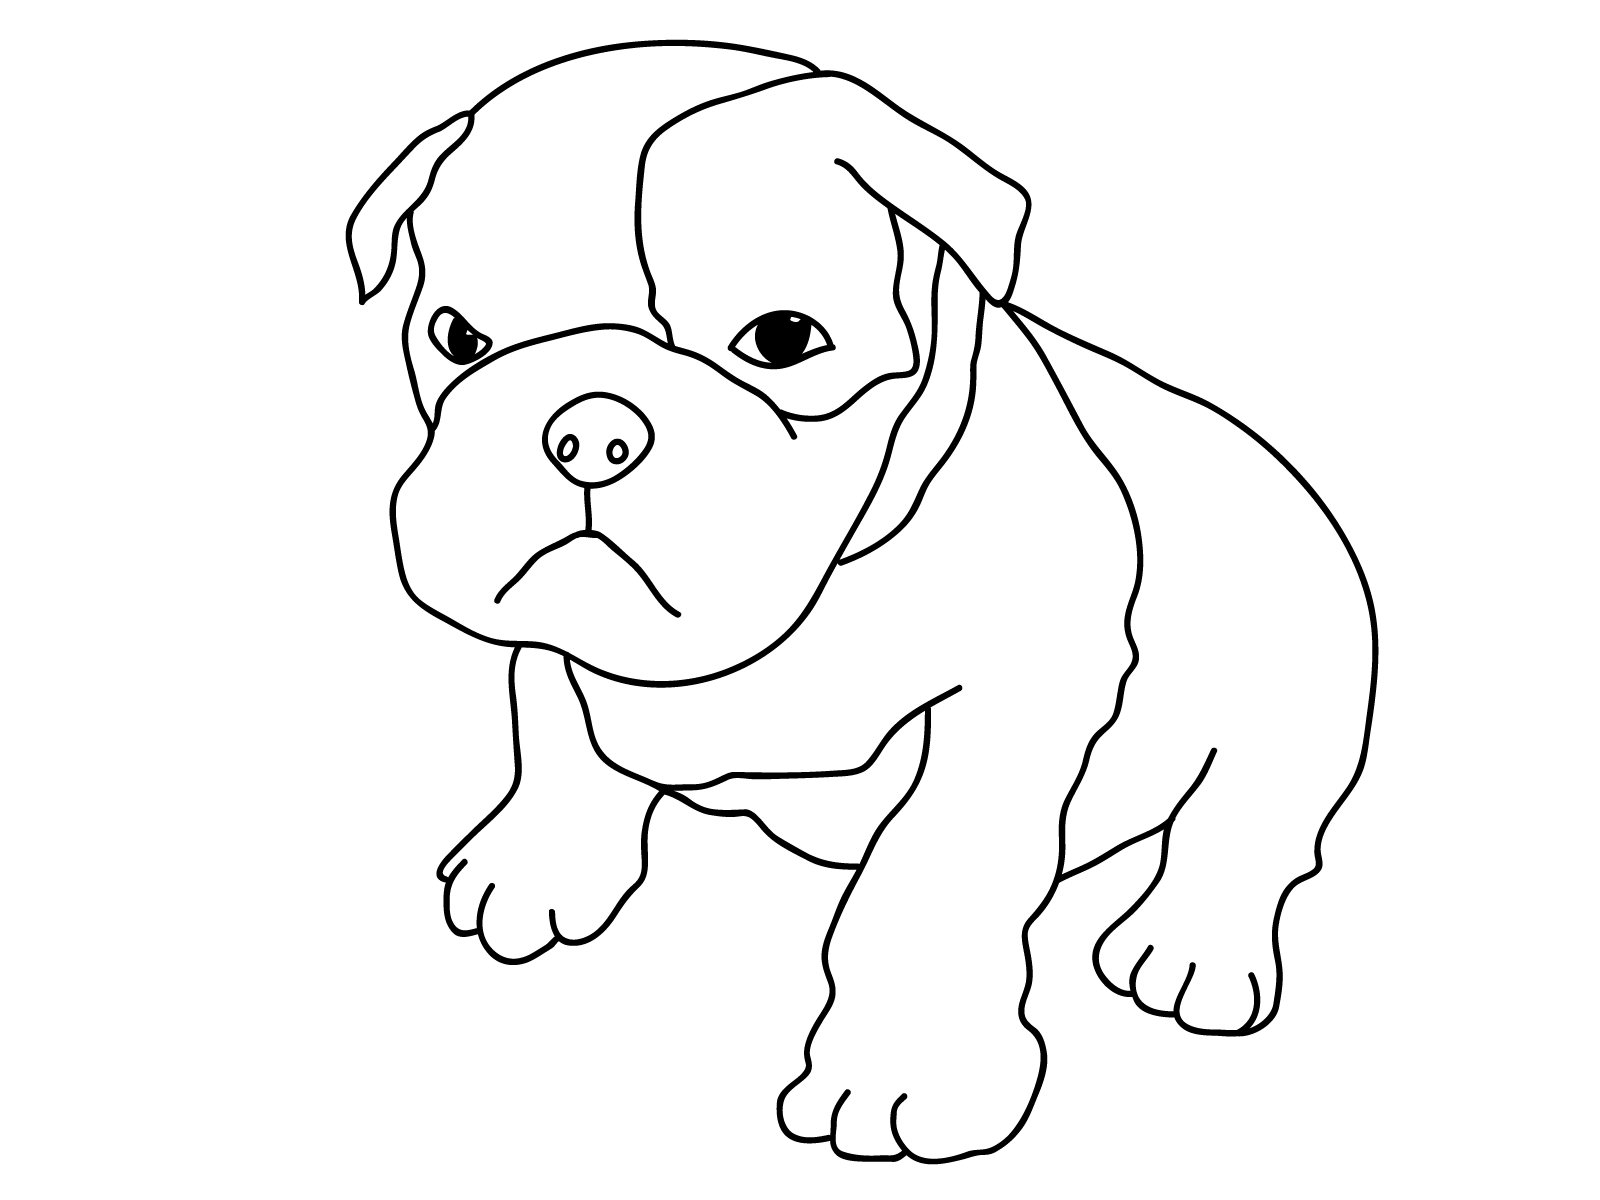 puppy coloring page realistic puppy coloring pages download and print for free coloring puppy page